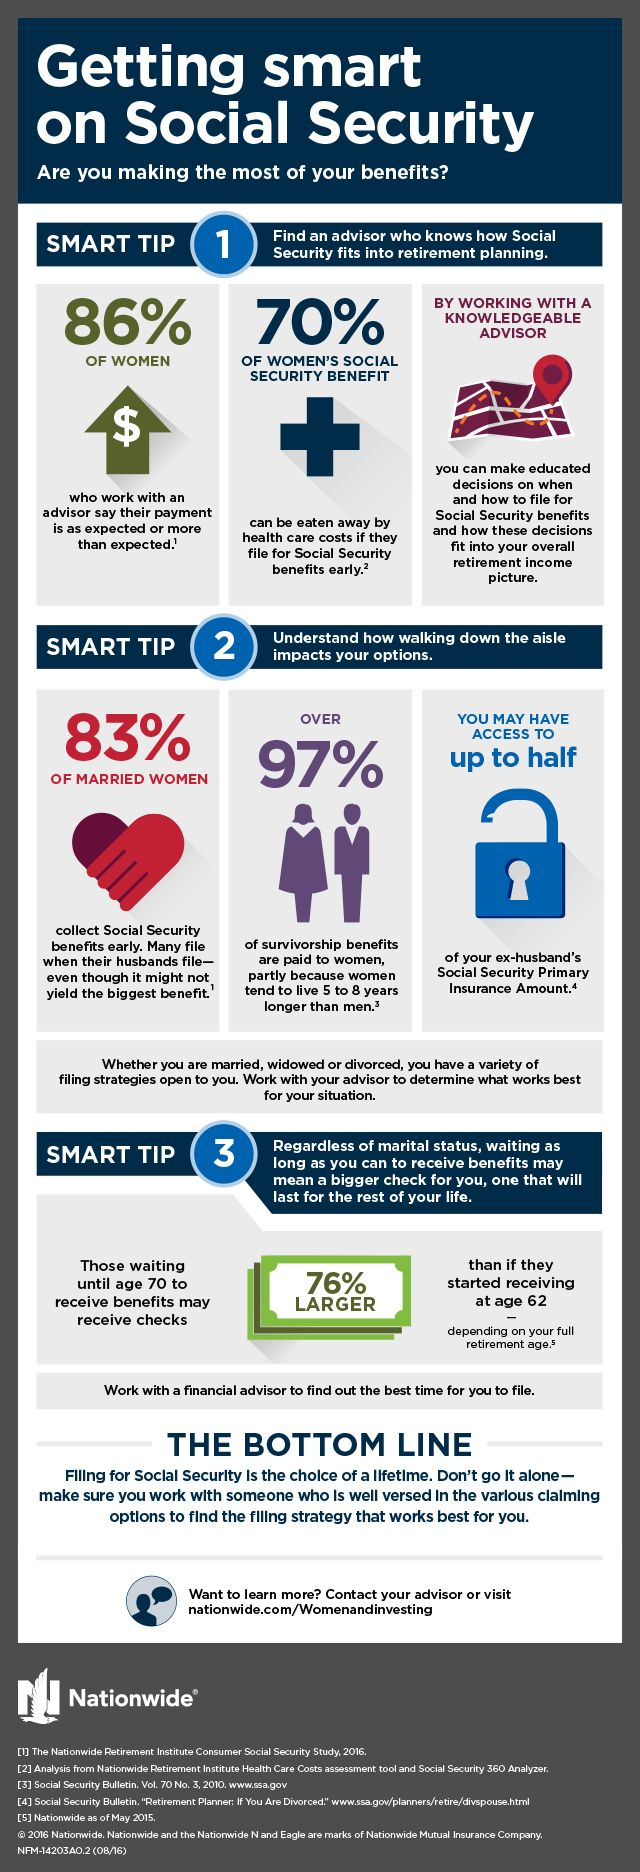 Getting Smart on Social Security | Nationwide.com